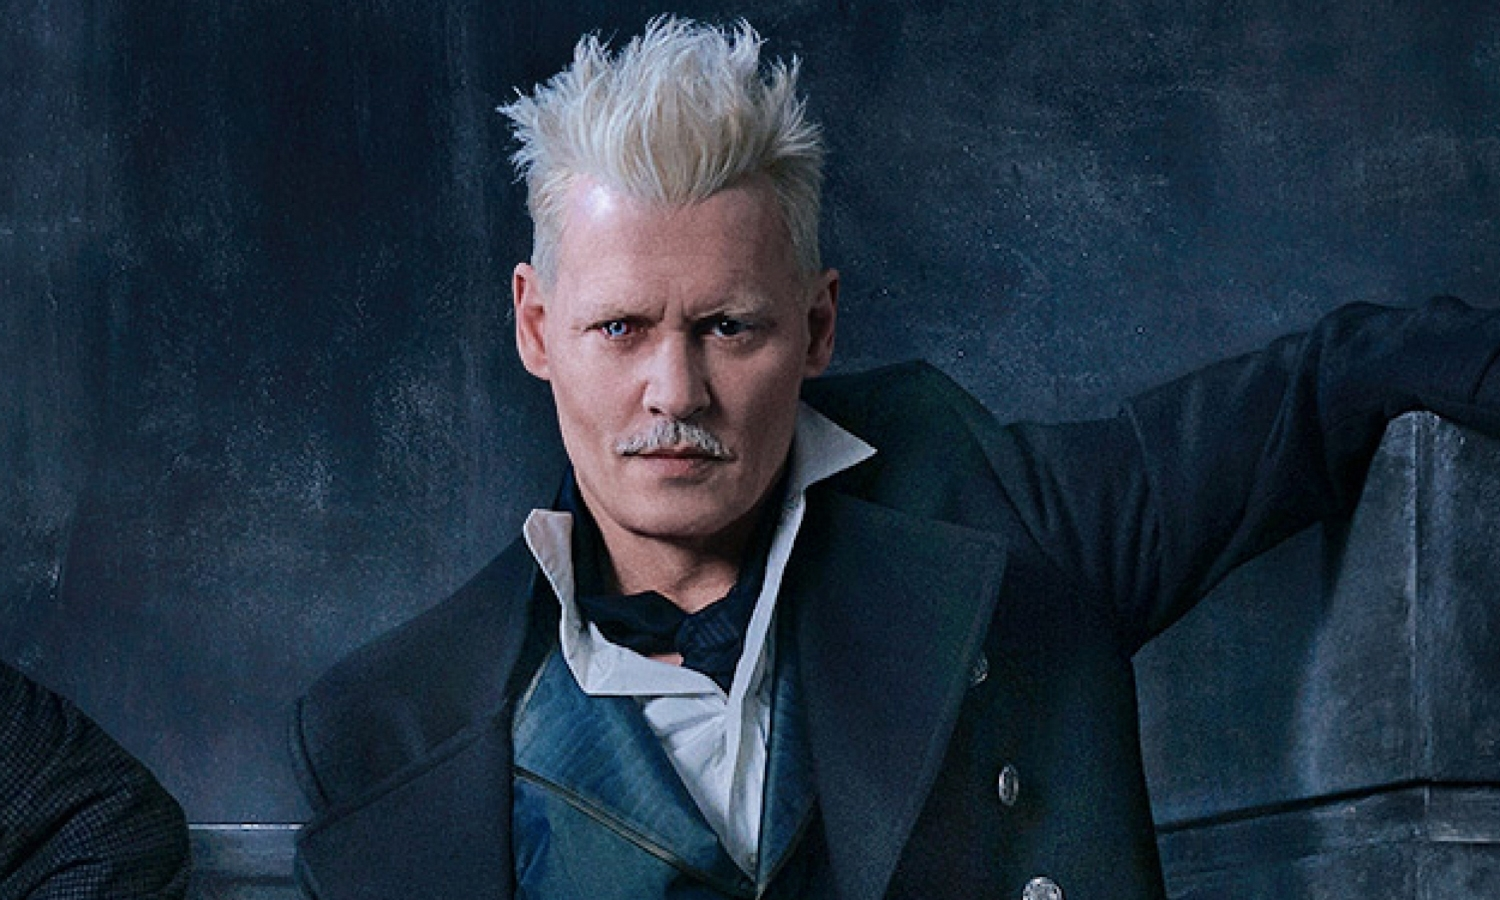 'Fantastic Beasts' Director Defends Keeping Johnny Depp as Grindelwald